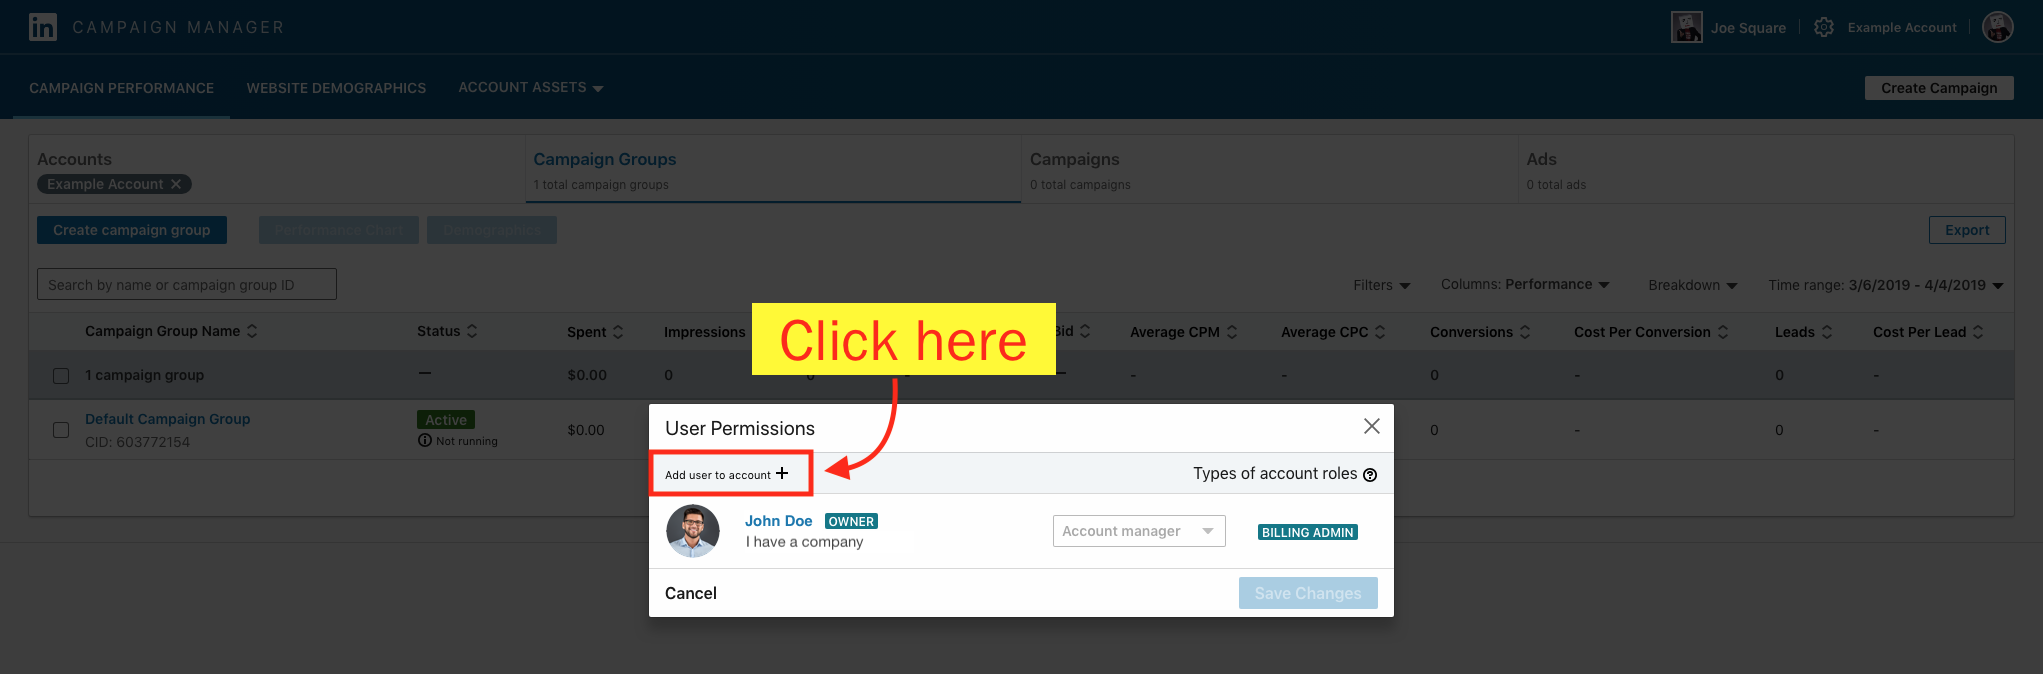 Add a Campaign Manager to Your LinkedIn Ad Account - Step 5 Screenshot